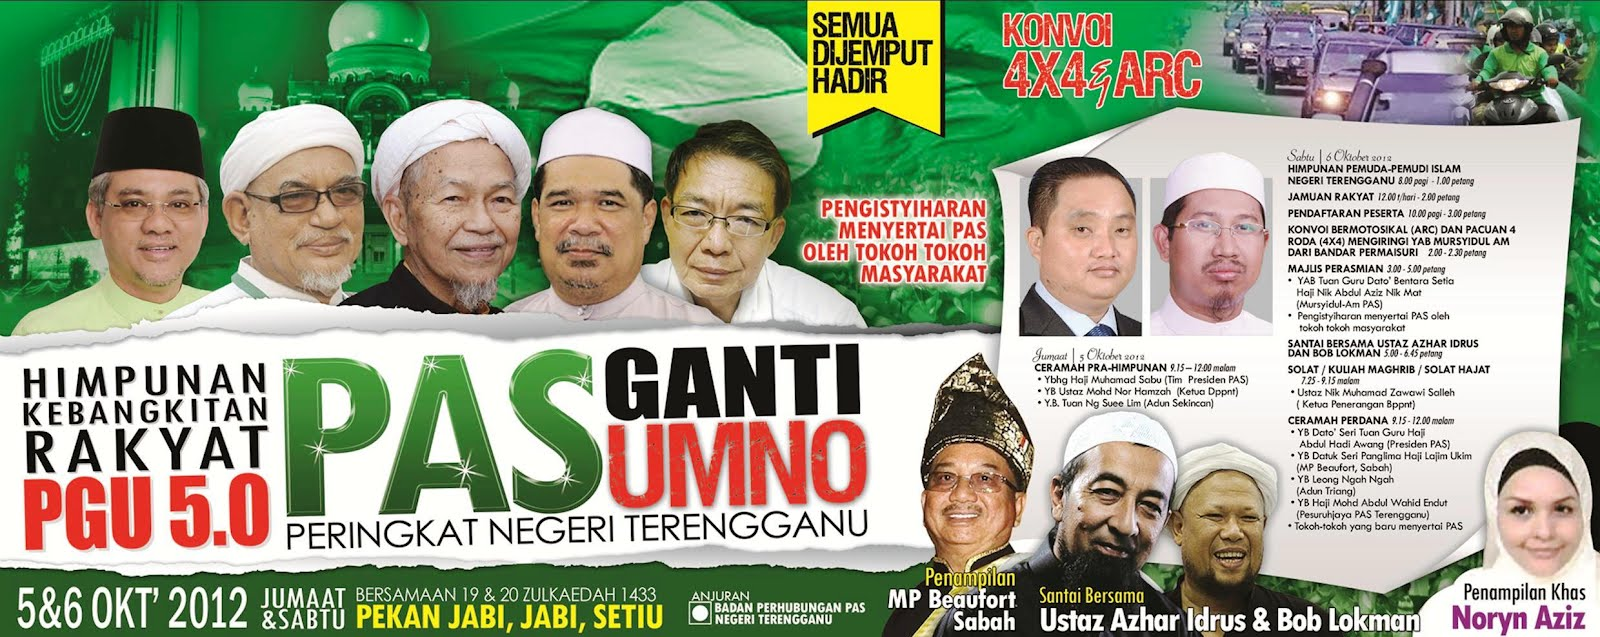 PAS Kawasan Setiu